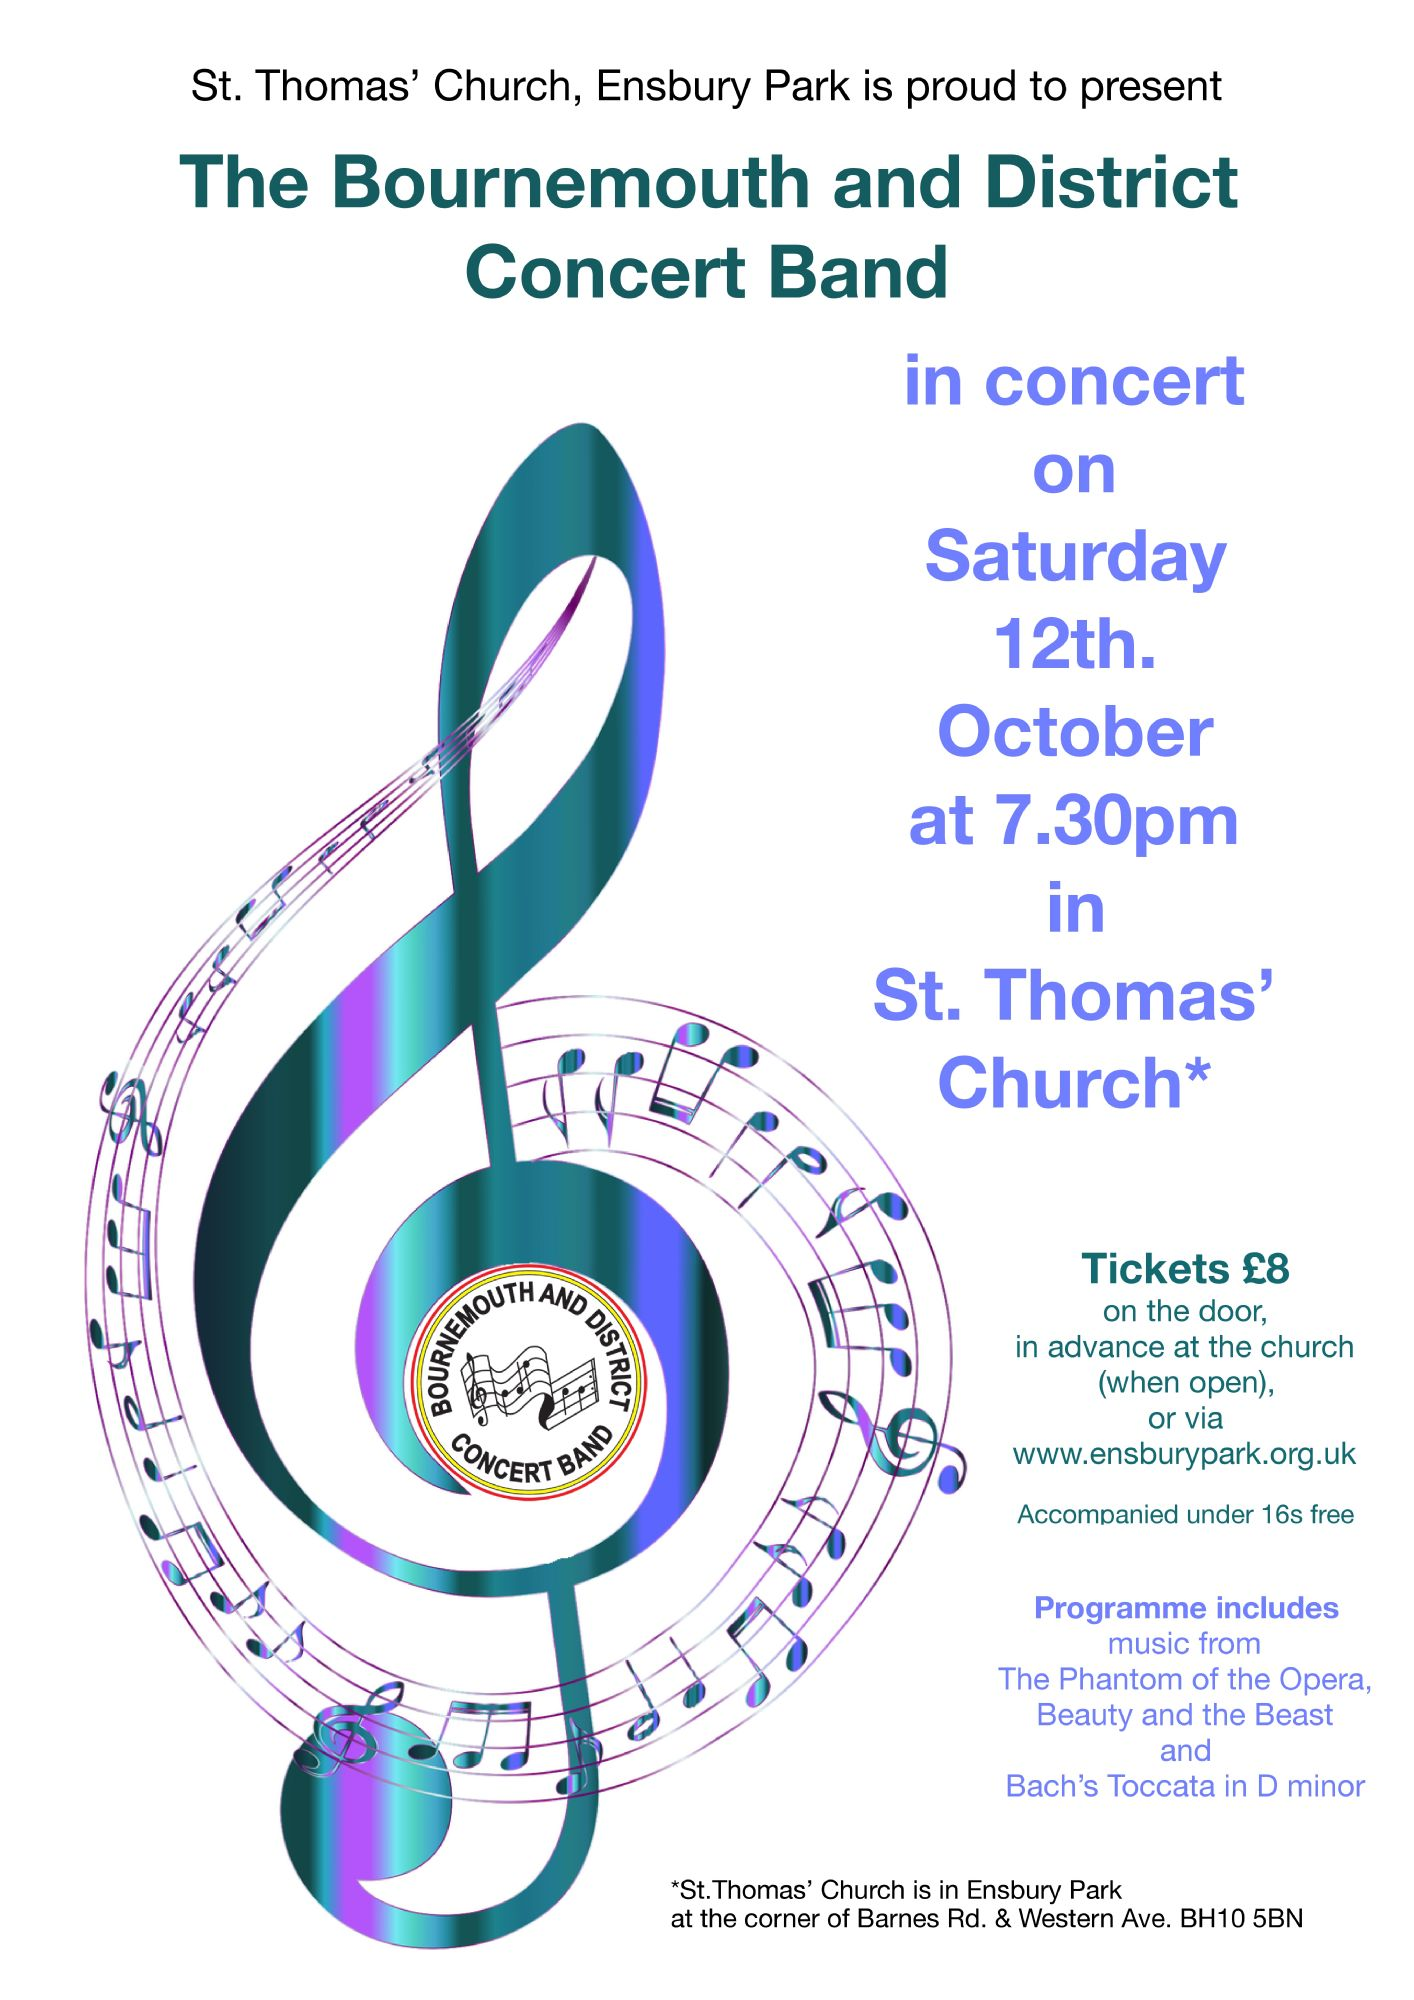 Concert on 12th October